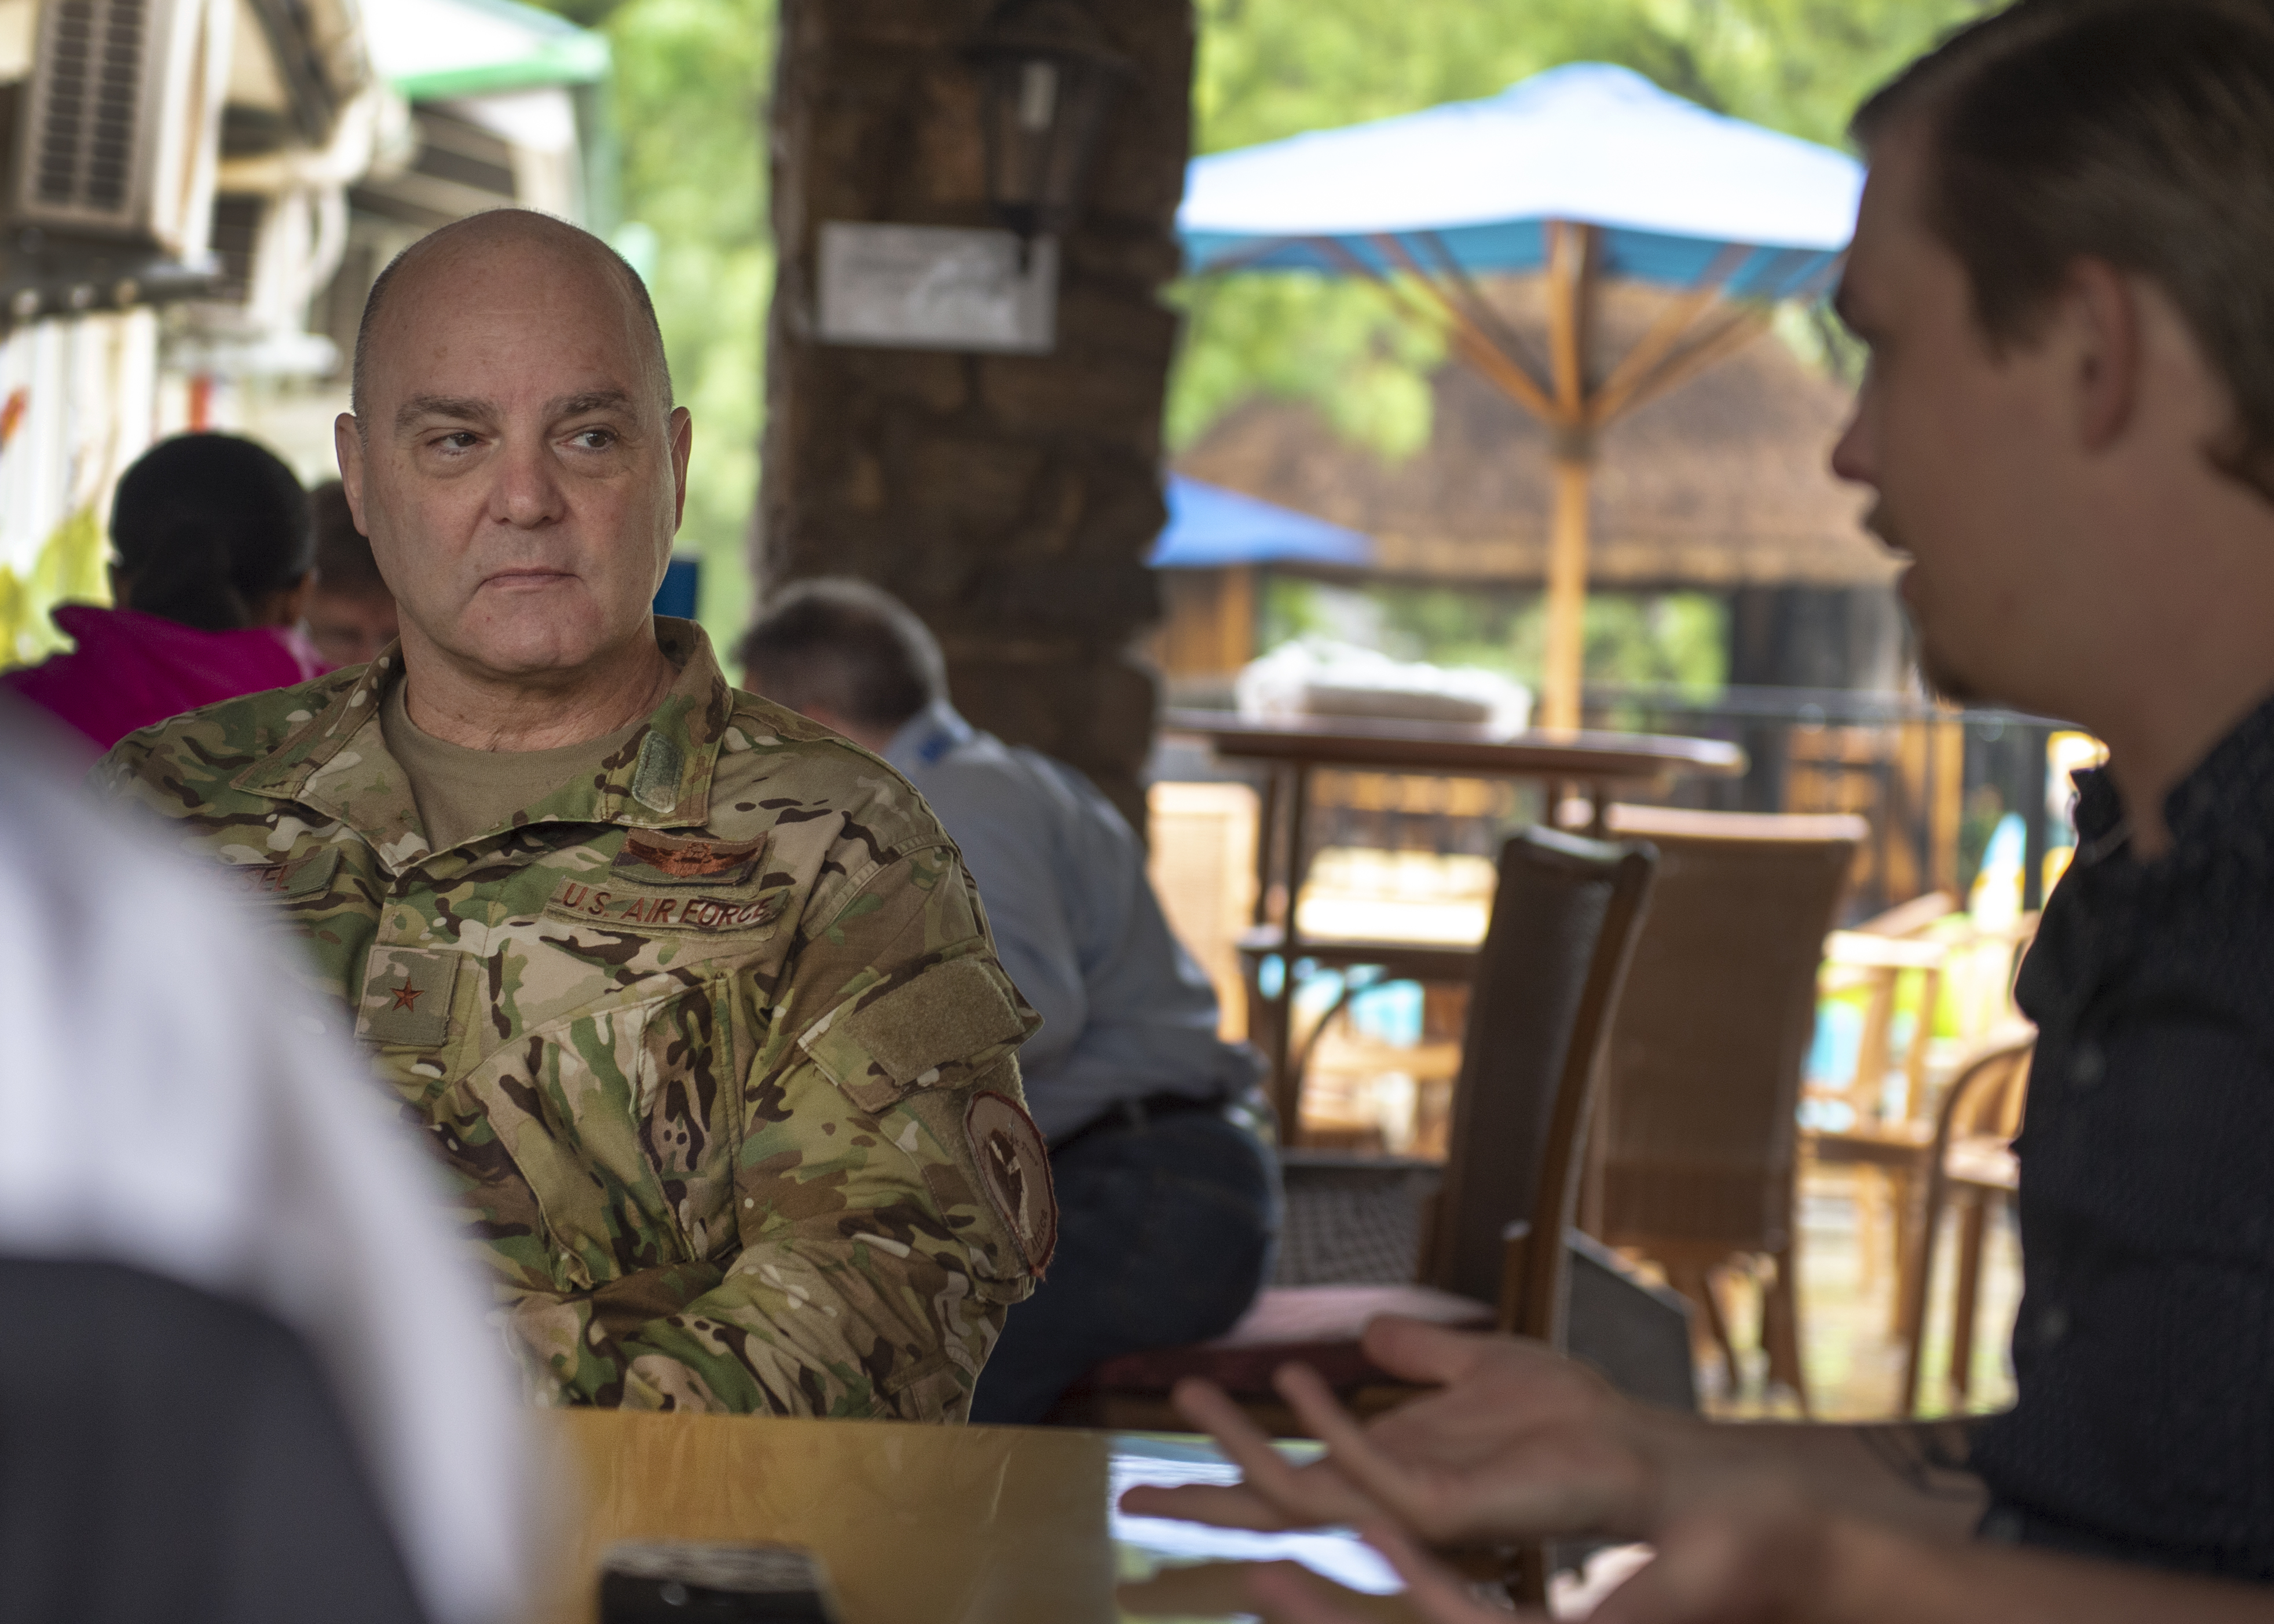 U.S. Air Force Brig. Gen. James R. Kriesel, deputy commanding general of Combined Joint Task Force-Horn of Africa (CJTF-HOA), listens to Alec Augustine-Marciel, a political officer assigned to the U.S. Embassy in South Sudan, in Juba, South Sudan August 14. Augustine-Marciel briefed Kriesel on the ever-changing political landscape in South Sudan. (U.S. Air Force Photo by Senior Airman Codie Trimble)